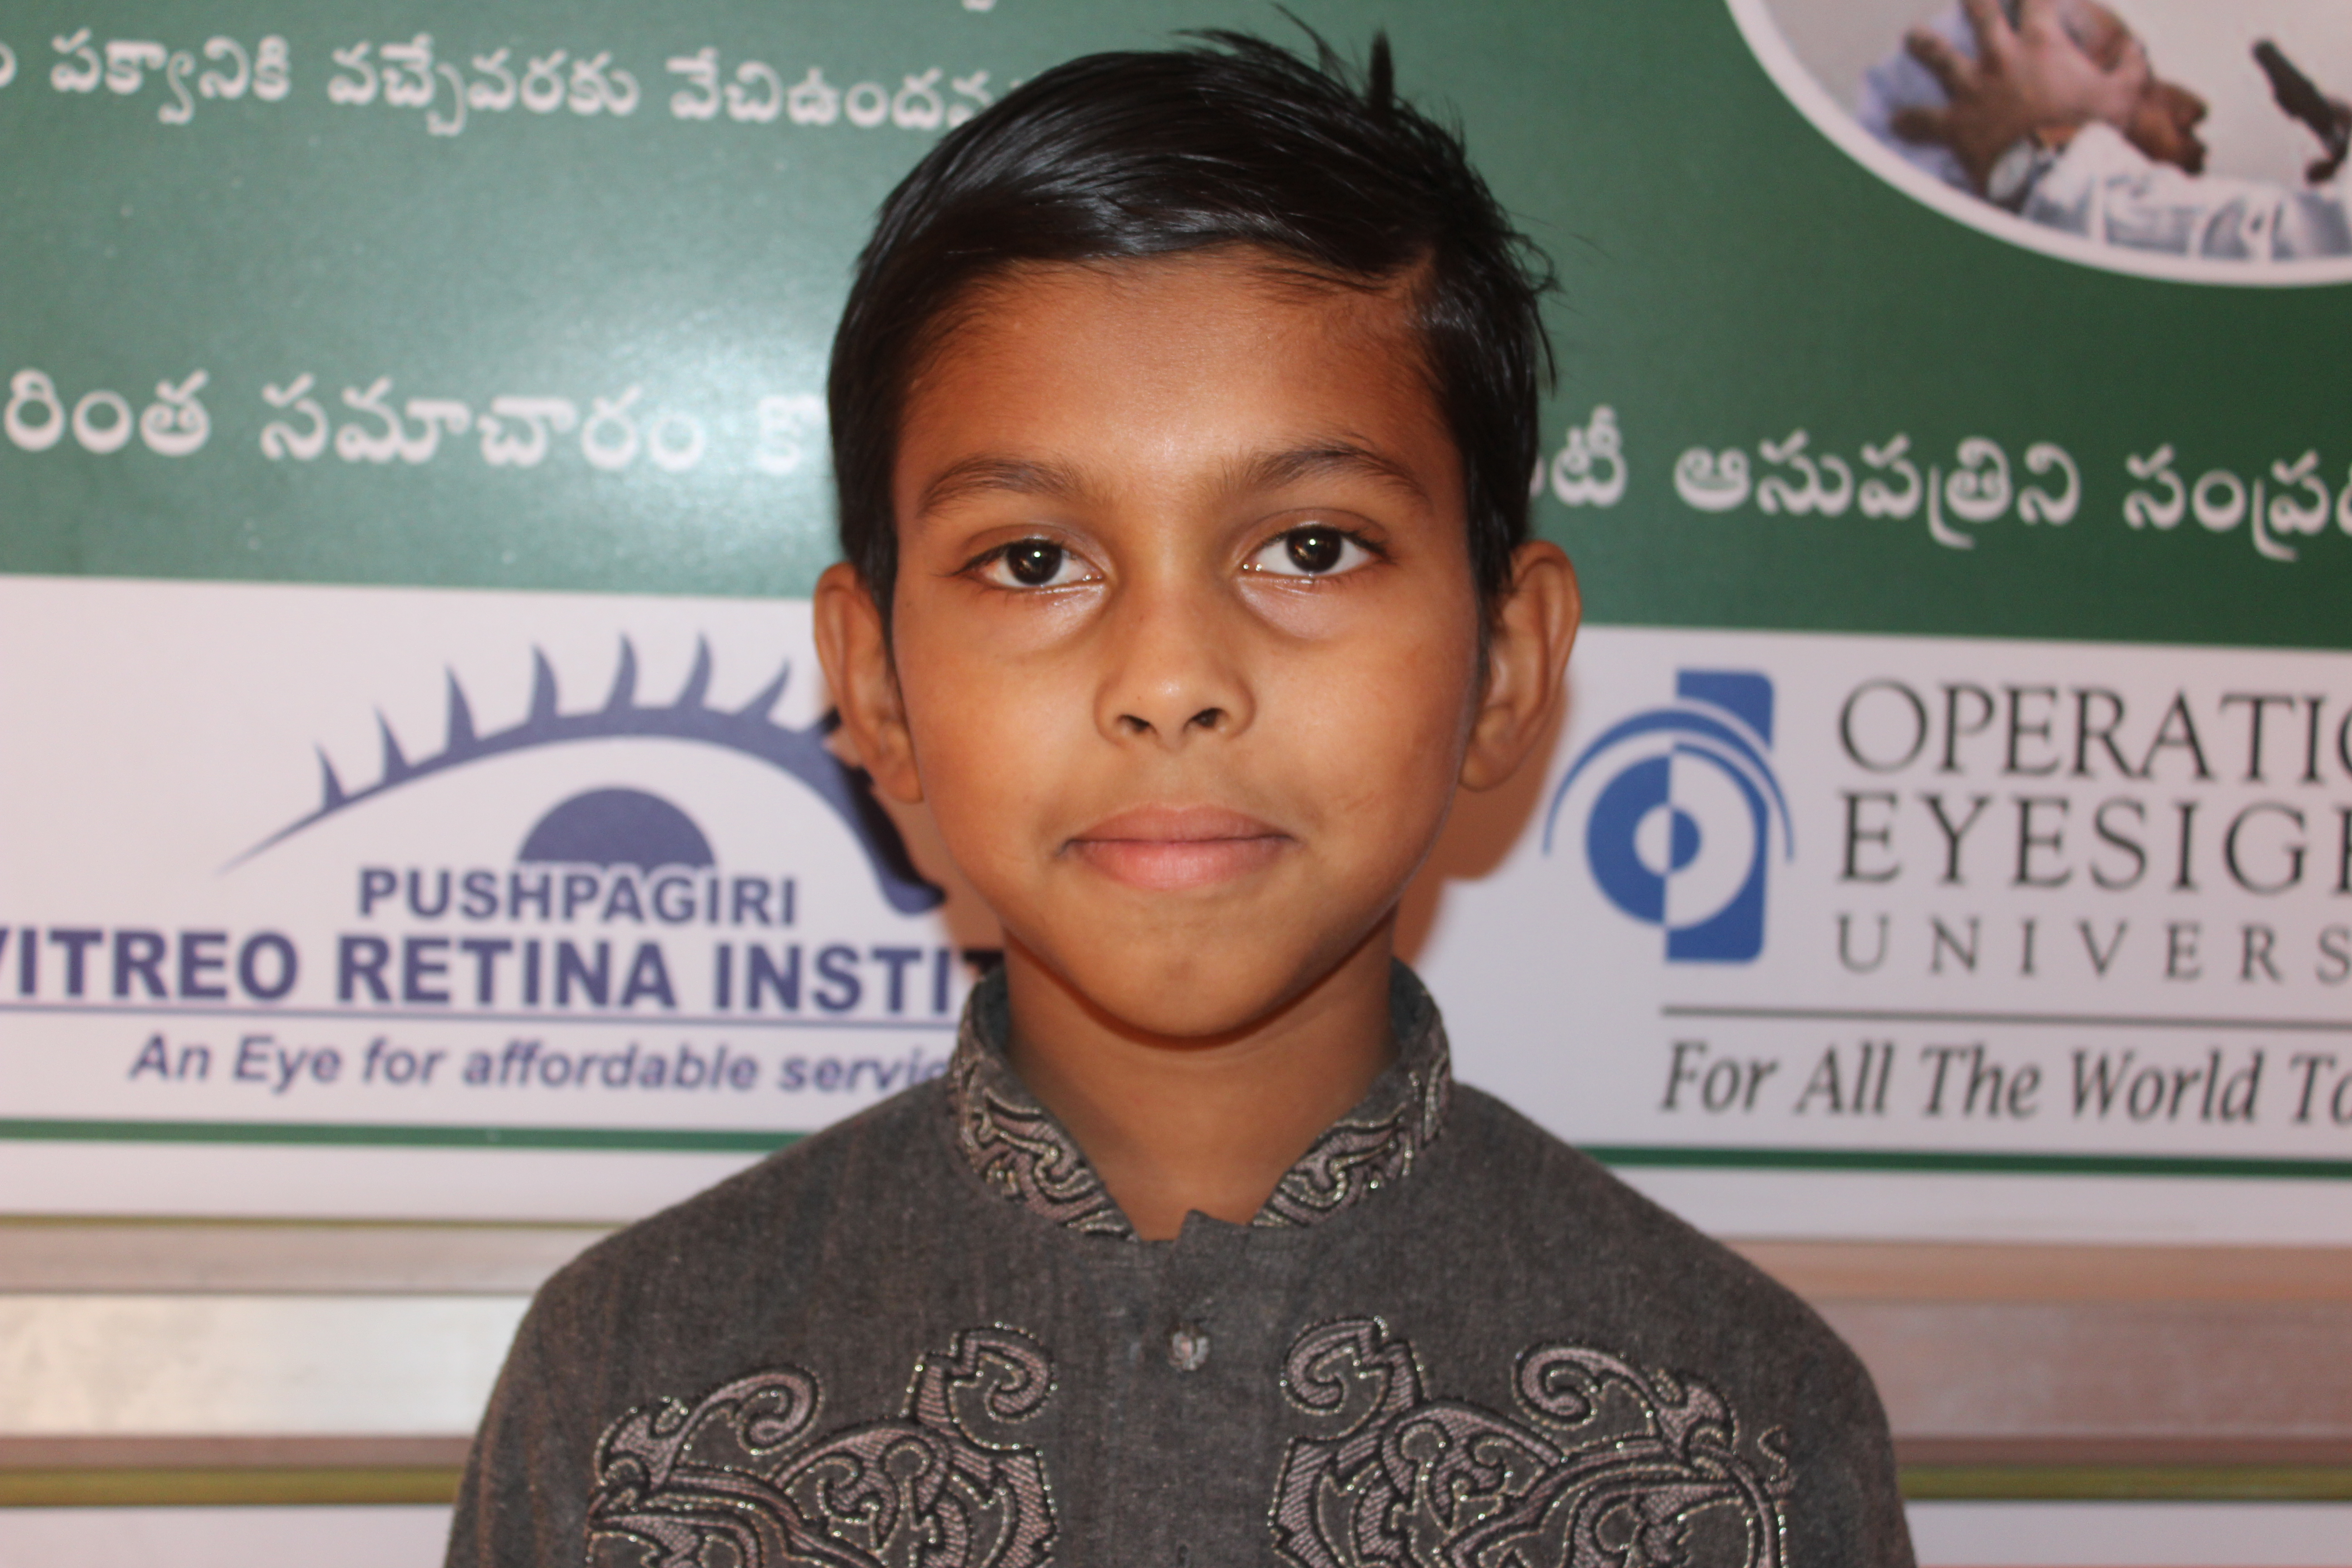 Young Indian boy with cross eye receives corrective surgery through Operation Eyesight